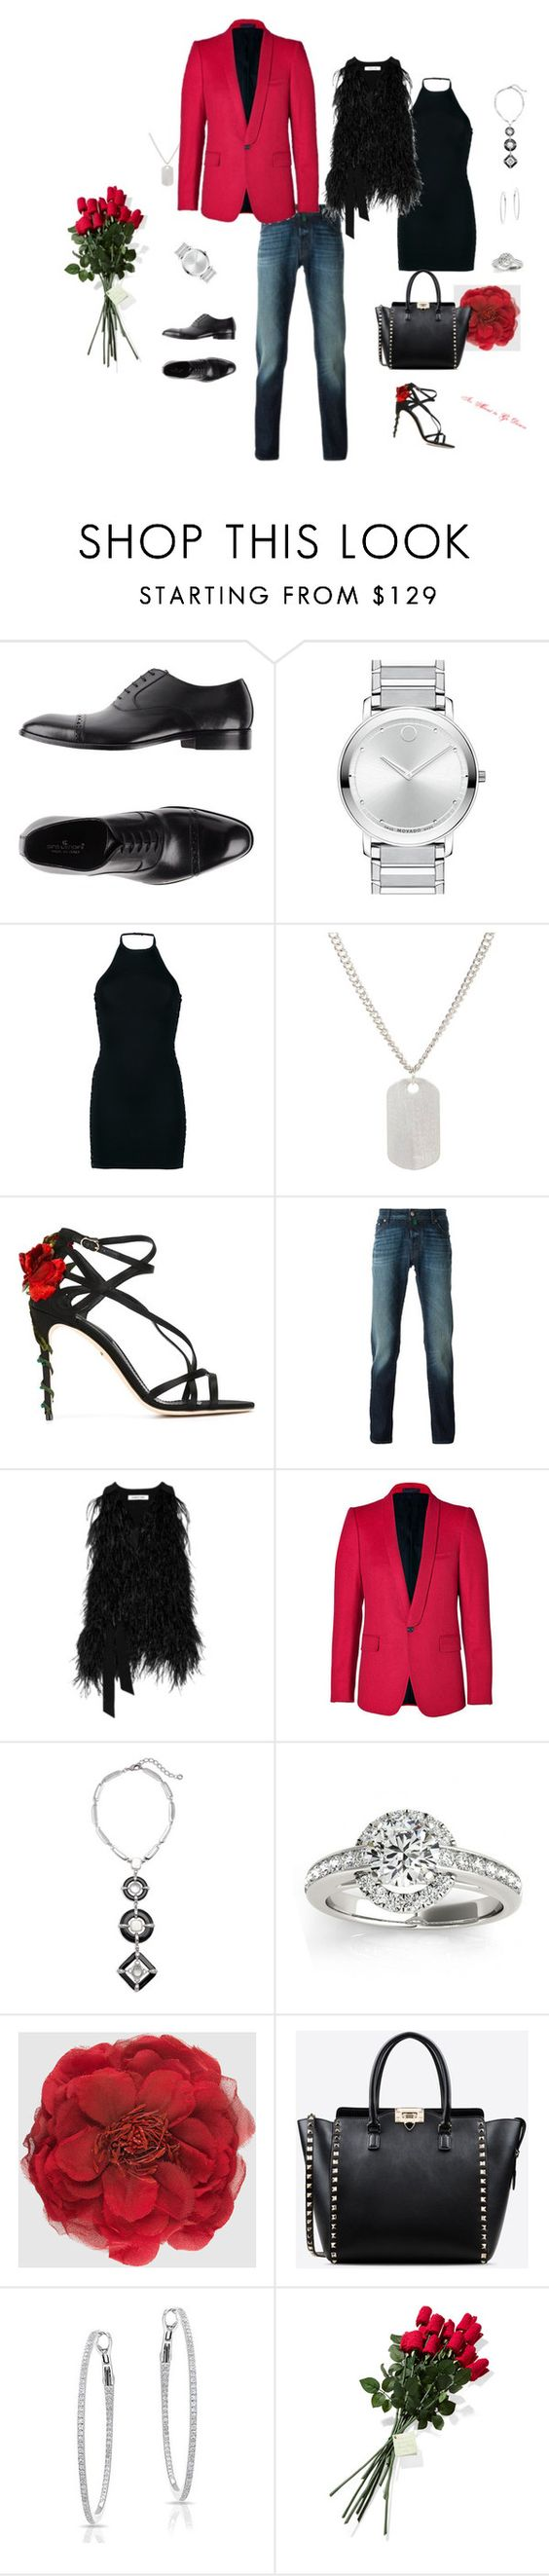 Here They Come ! by nicolapolis on Polyvore featuring Balmain, Elizabeth and James, Hanky Panky, Dolce&Gabbana, Valentino, Gucci, Chico's, Allurez, Jacob Cohёn and Ciro Lendini